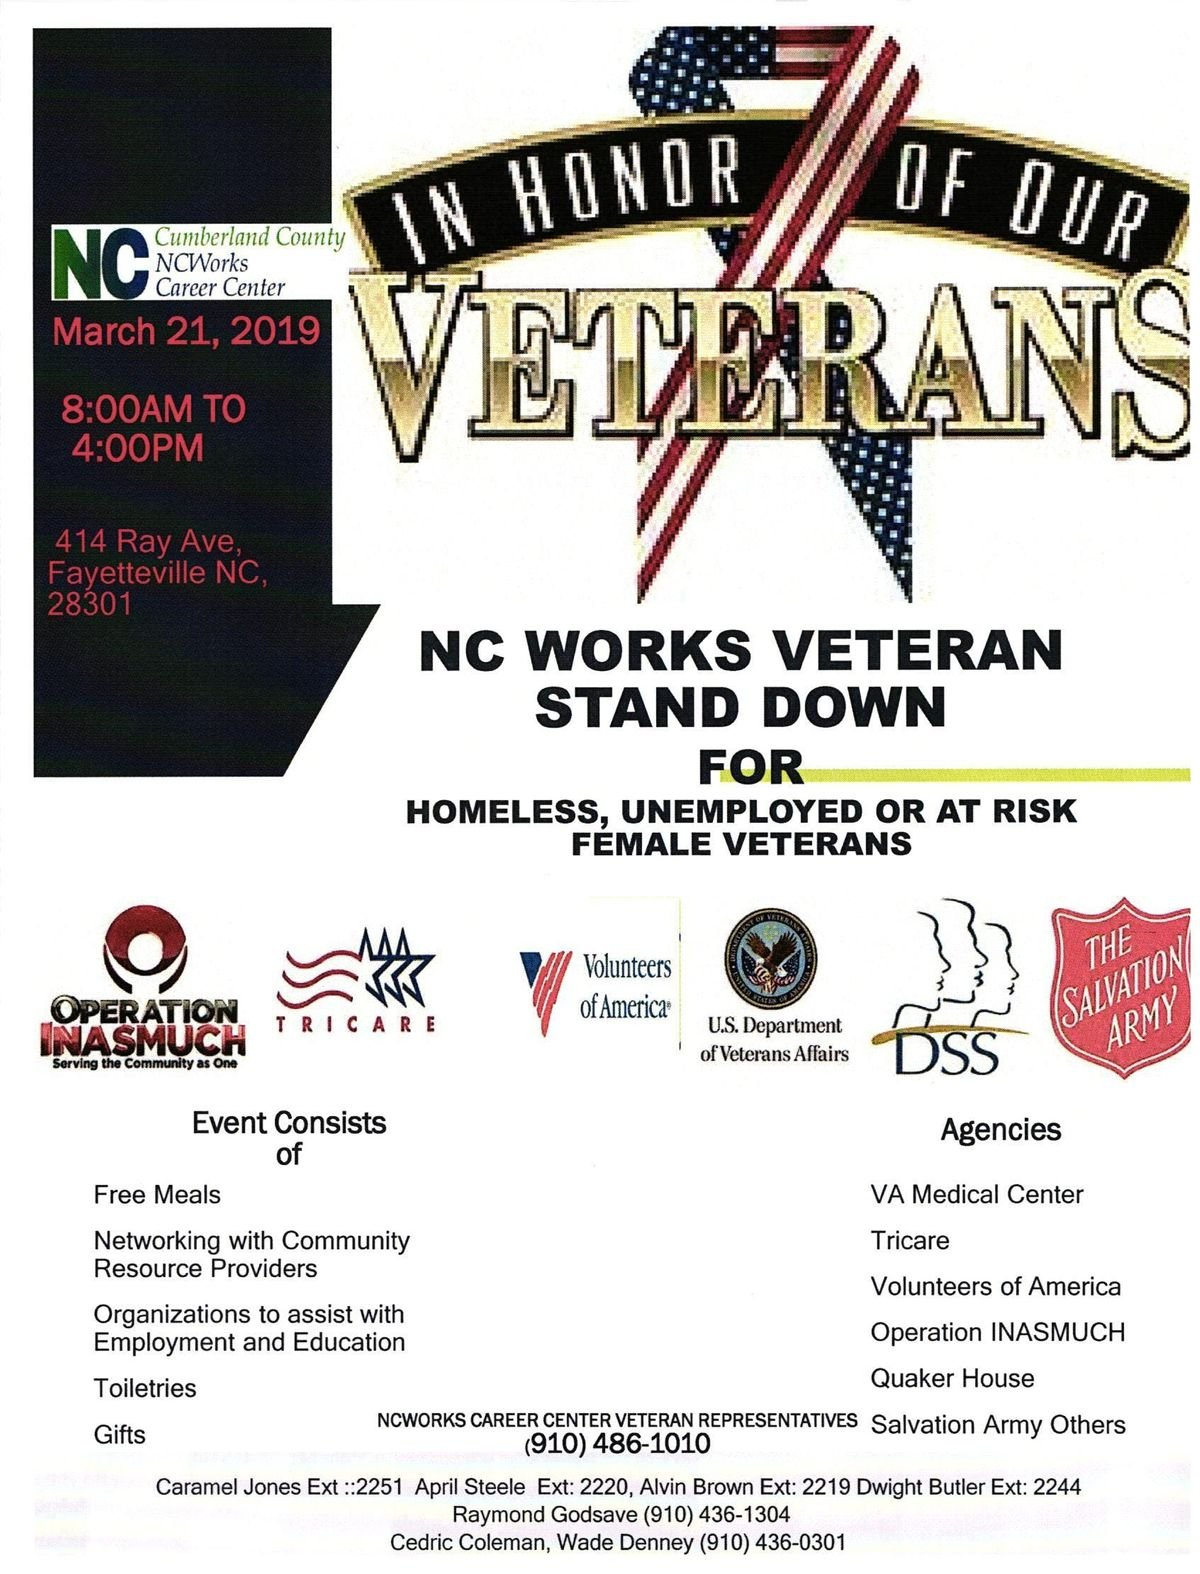 NCWorks Veteran Stand Down for Homeless Unemployed or At Risk Female Veterans